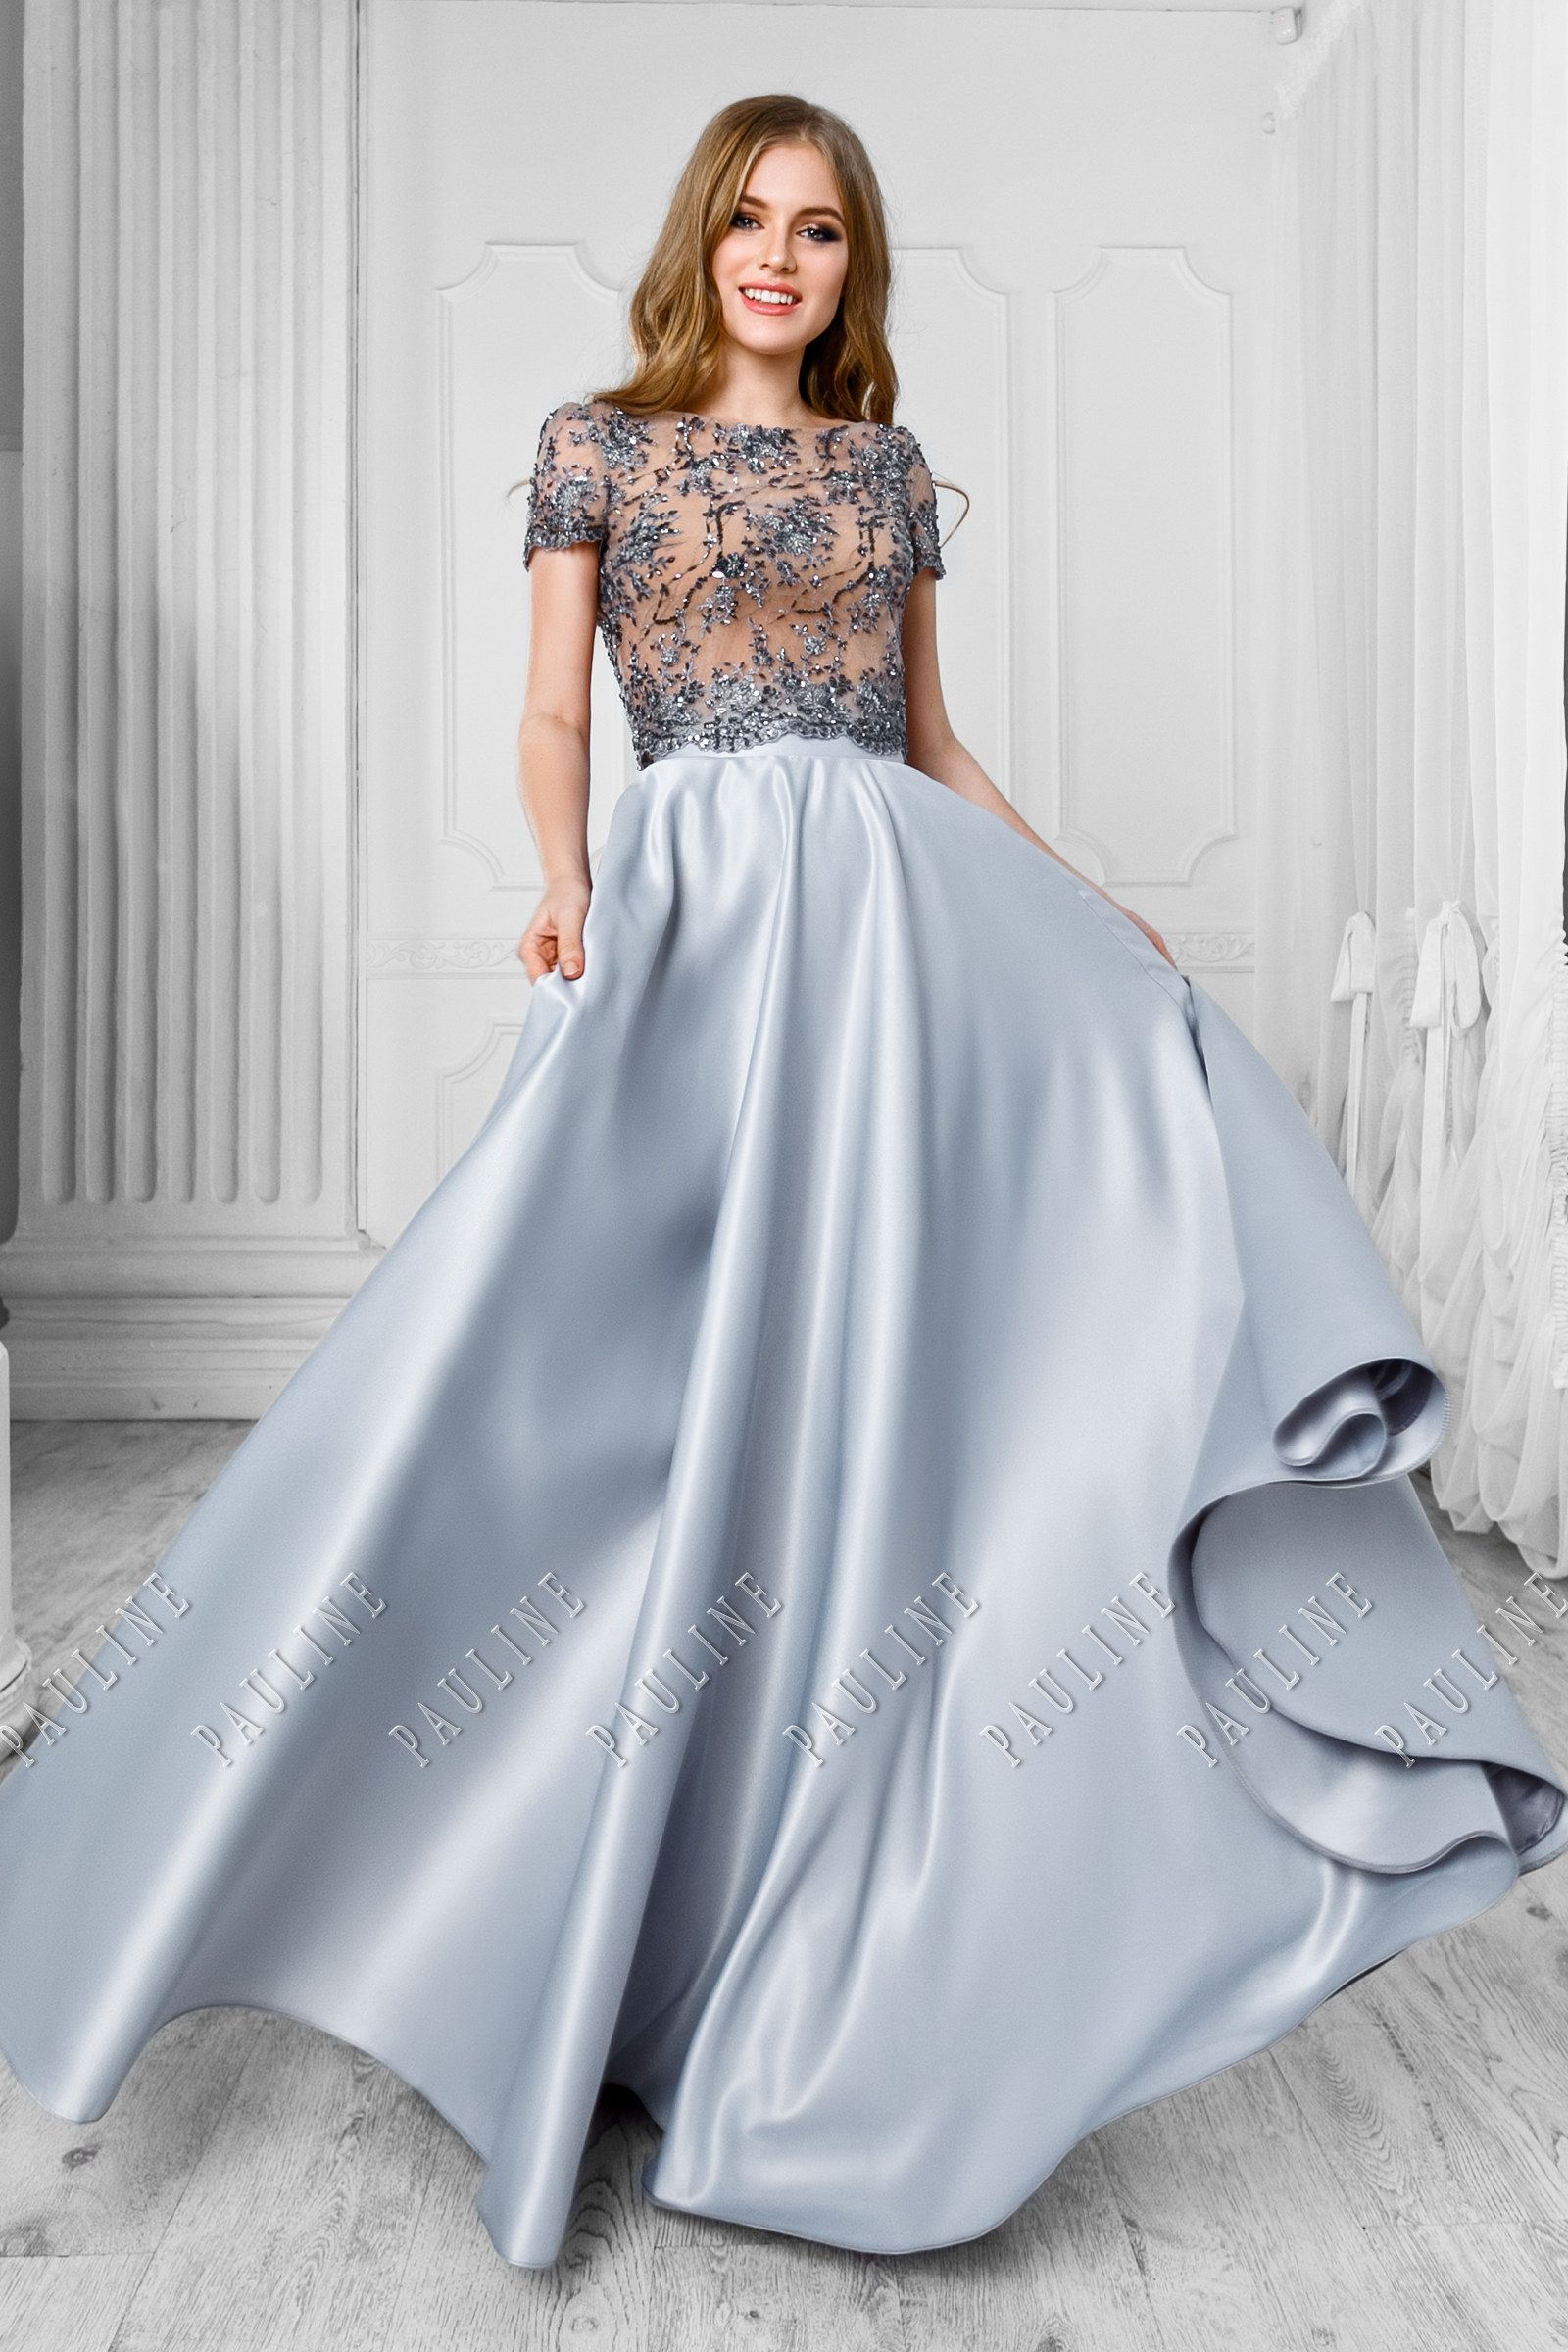 prom dress | Выпускной \ Prom | Pinterest | Prom and Beautiful gowns